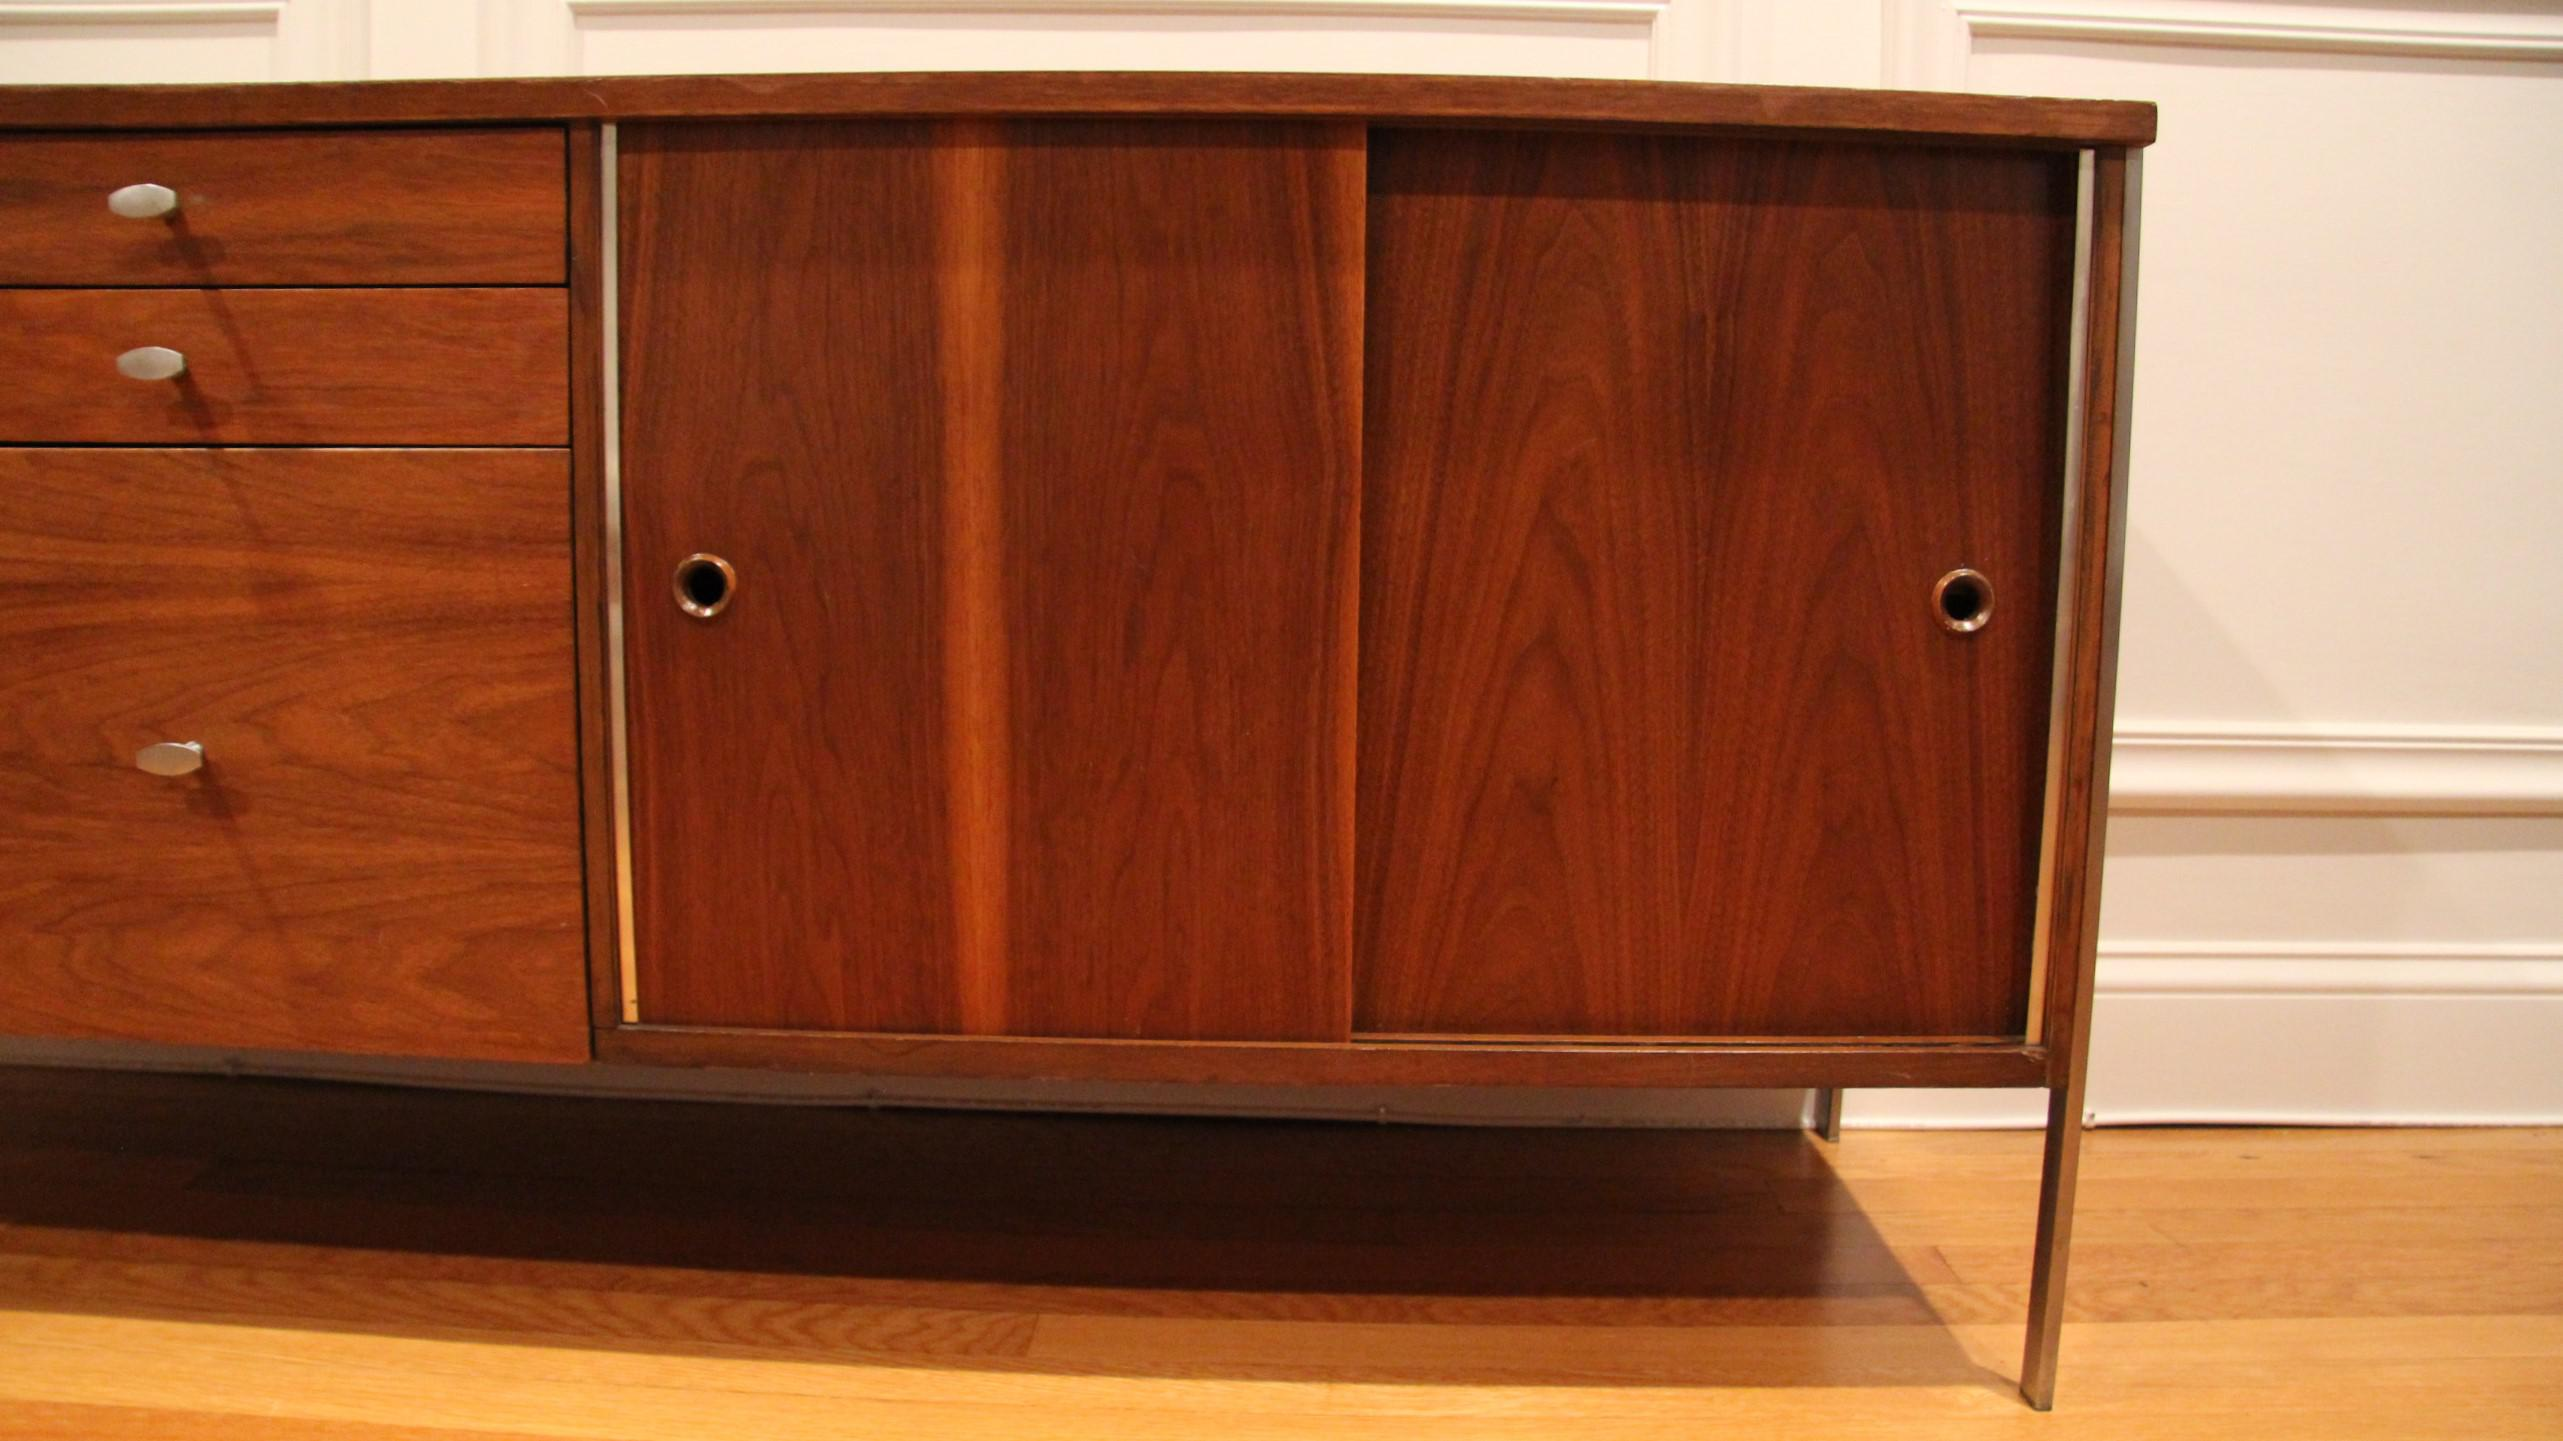 Beautiful Paul Mccobb For The Calvin Group Midcentury Modern Credenza